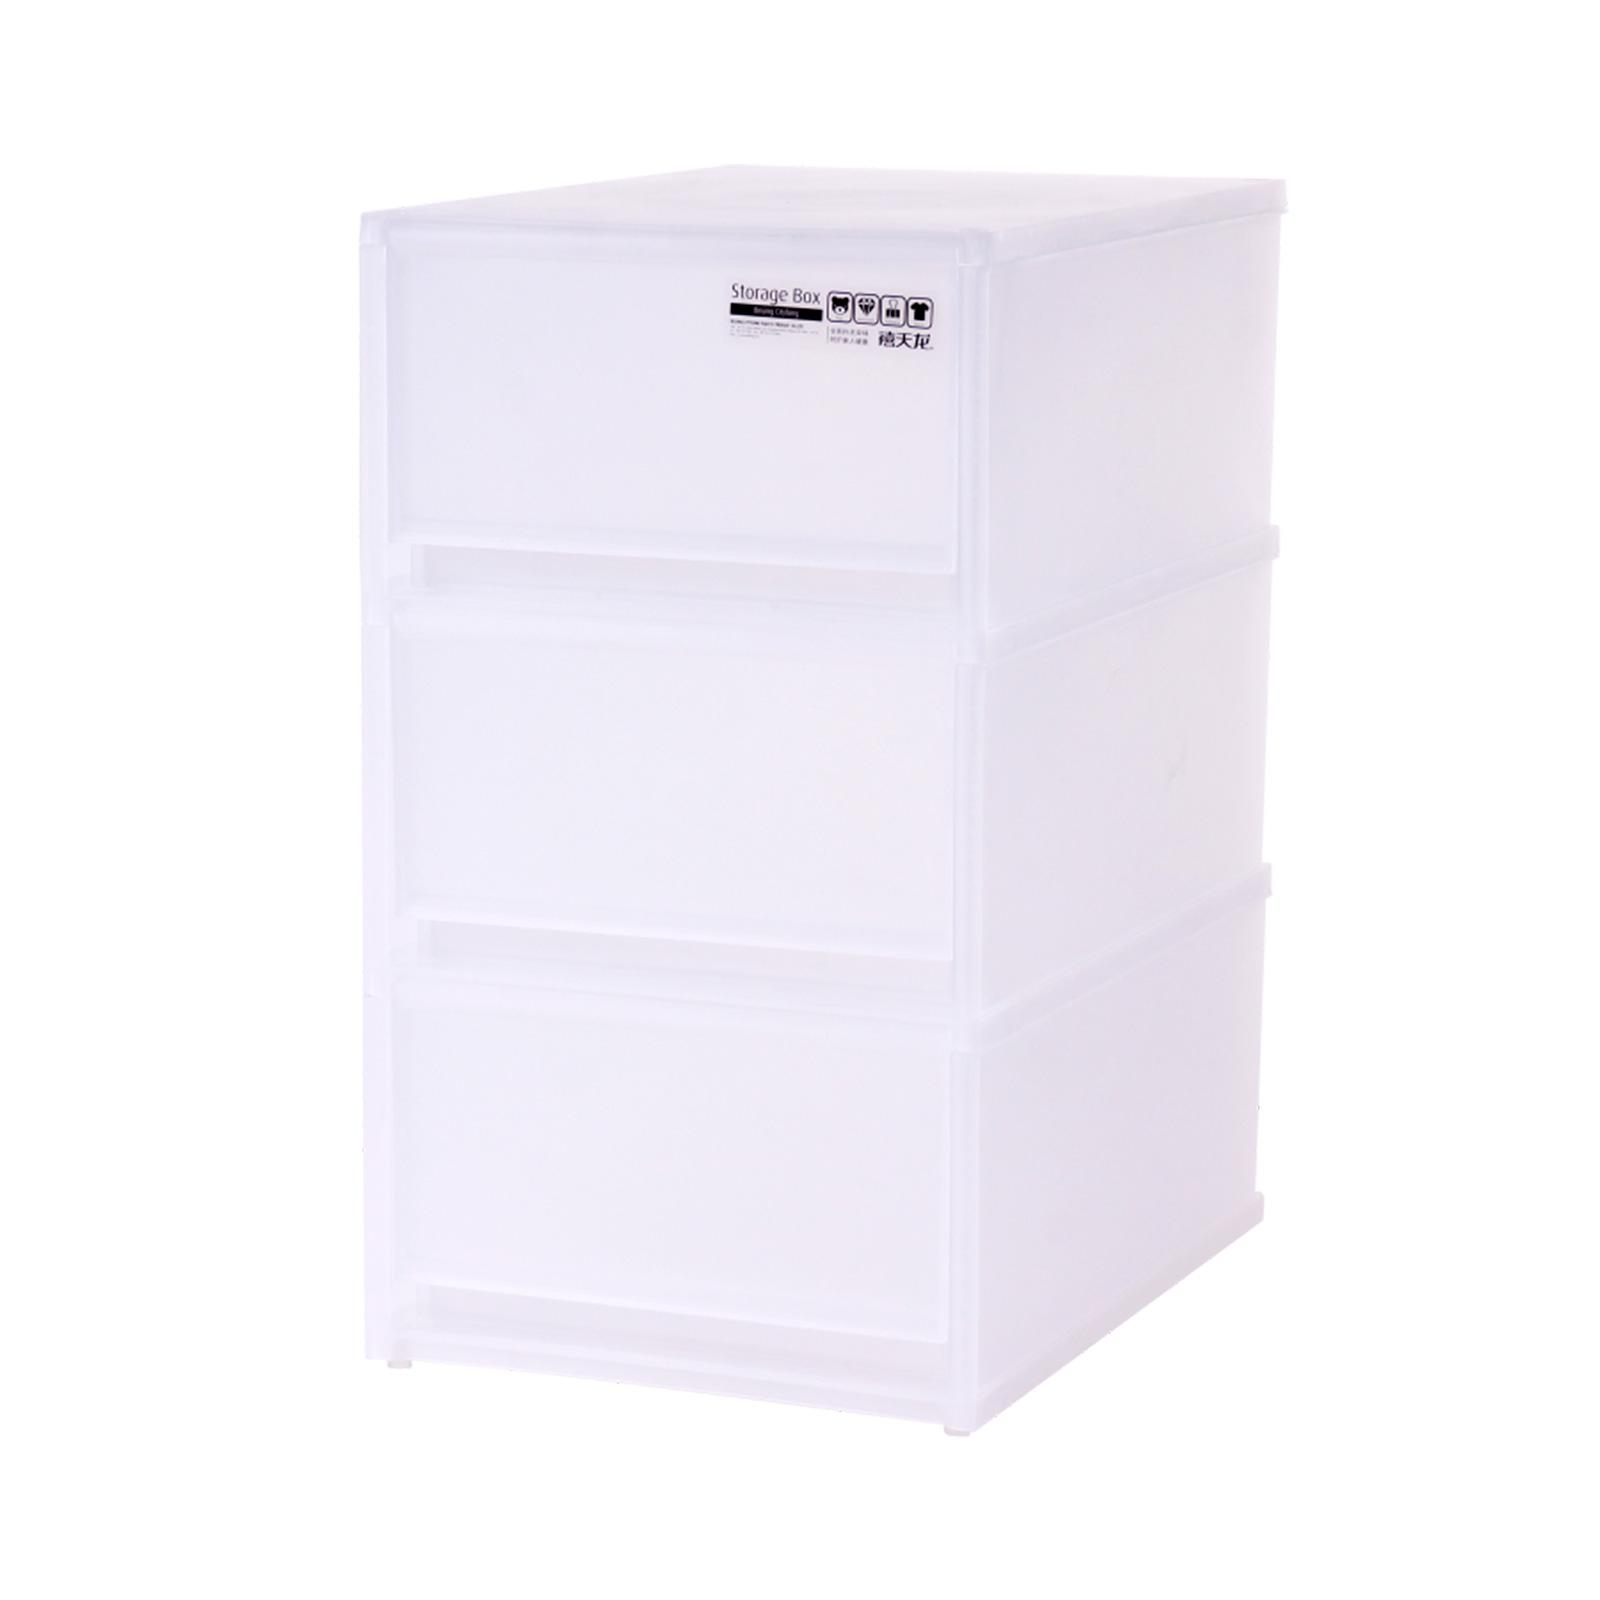 CITYLIFE Mini 3 Tier Cabinet